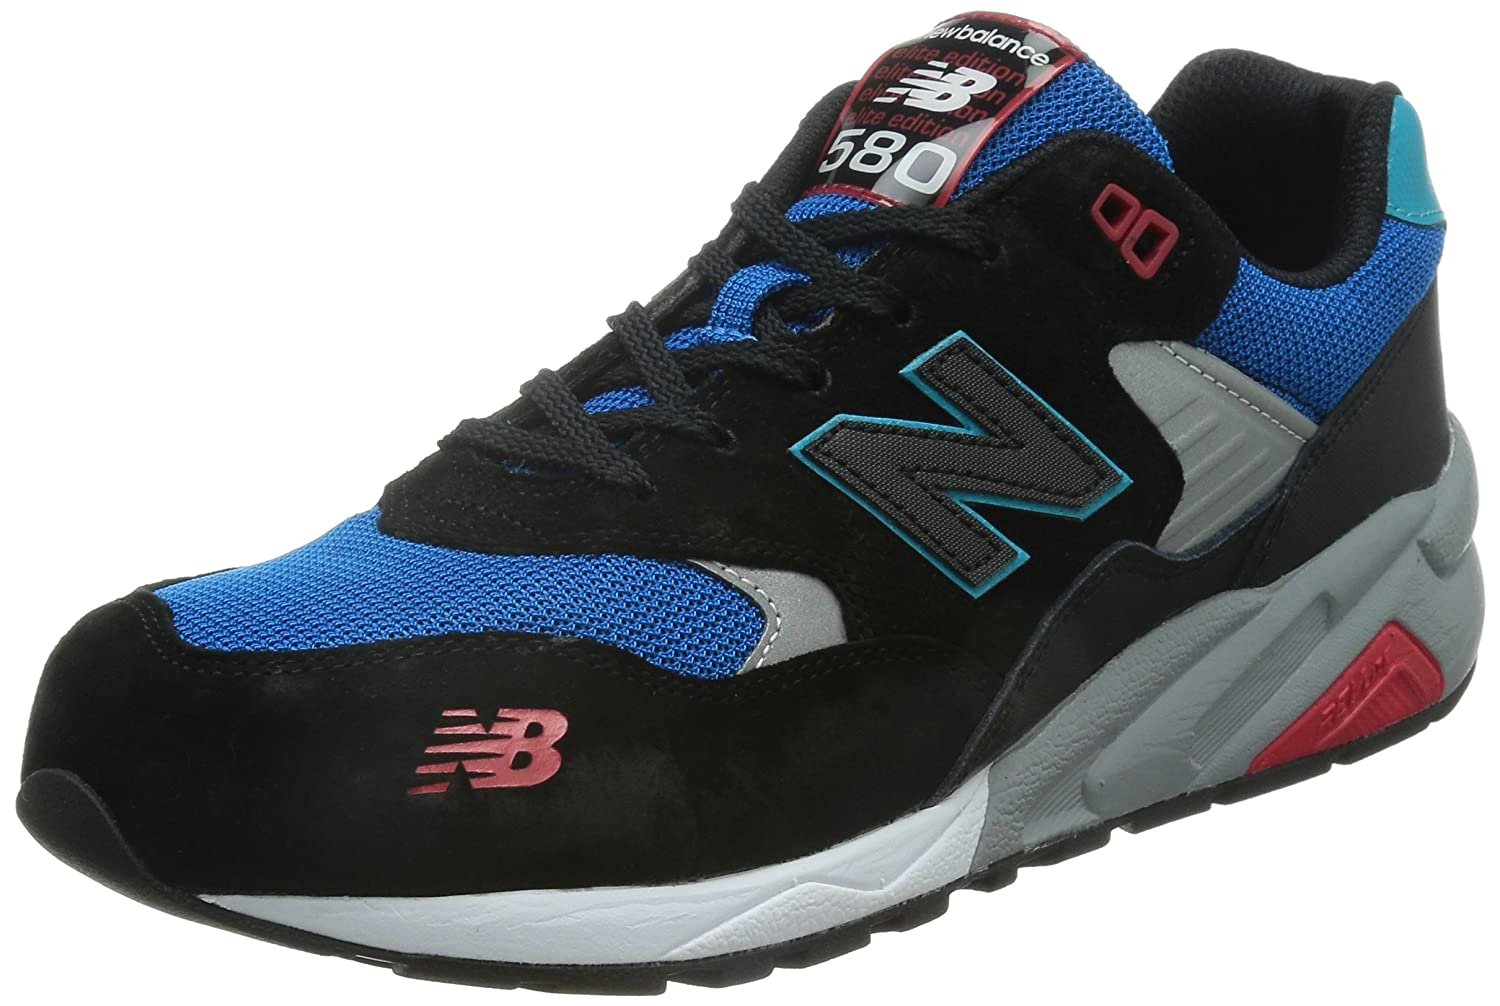 plus récent 96bbd d3f81 New Balance Men's 580 Lifestyle Running Sneakers